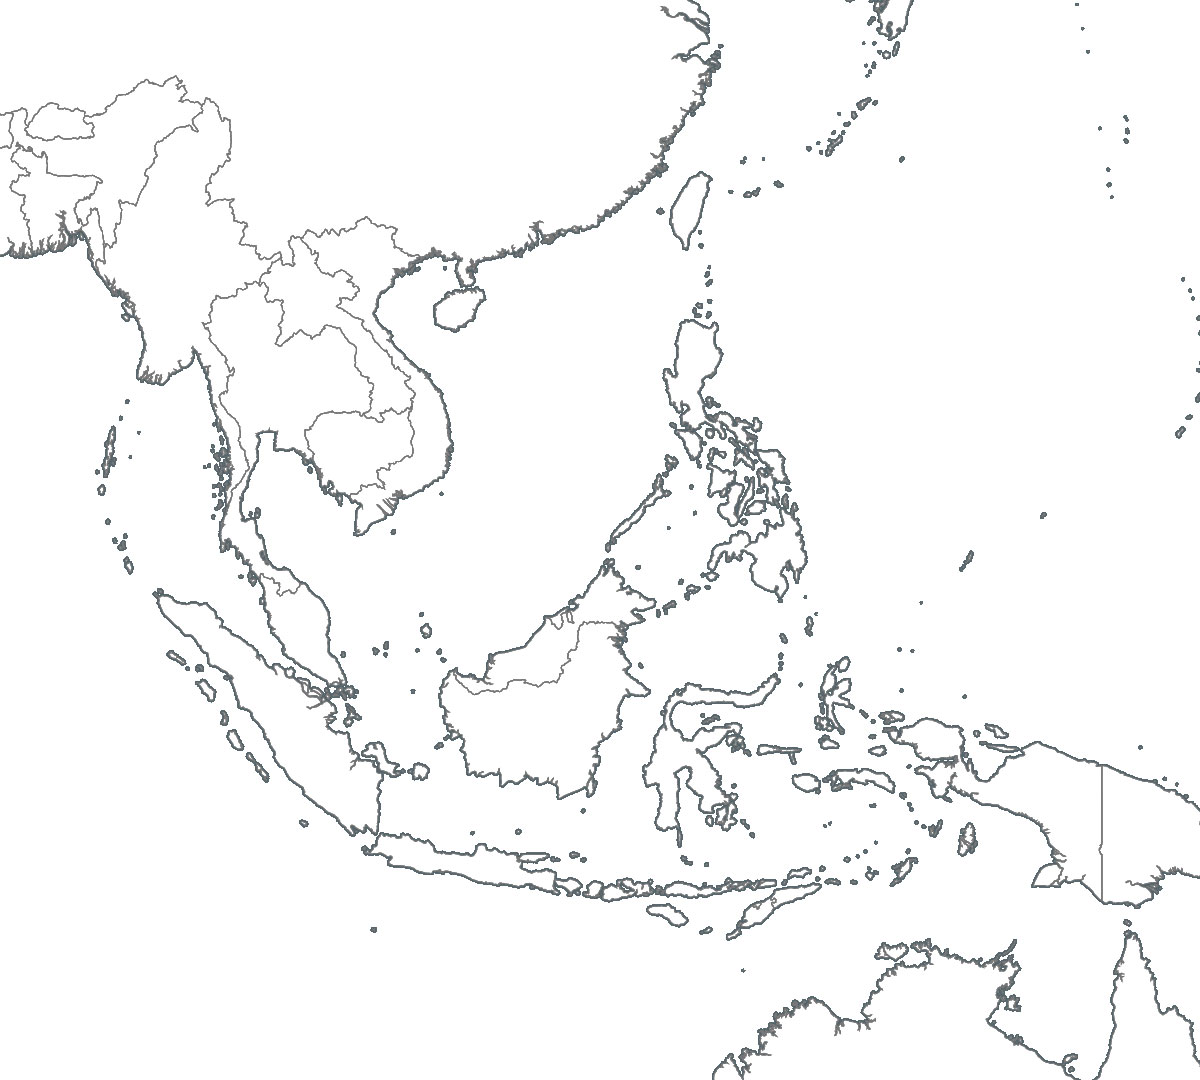 Black Map Of Asia.8 Free Maps Of Asean And Southeast Asia Asean Up